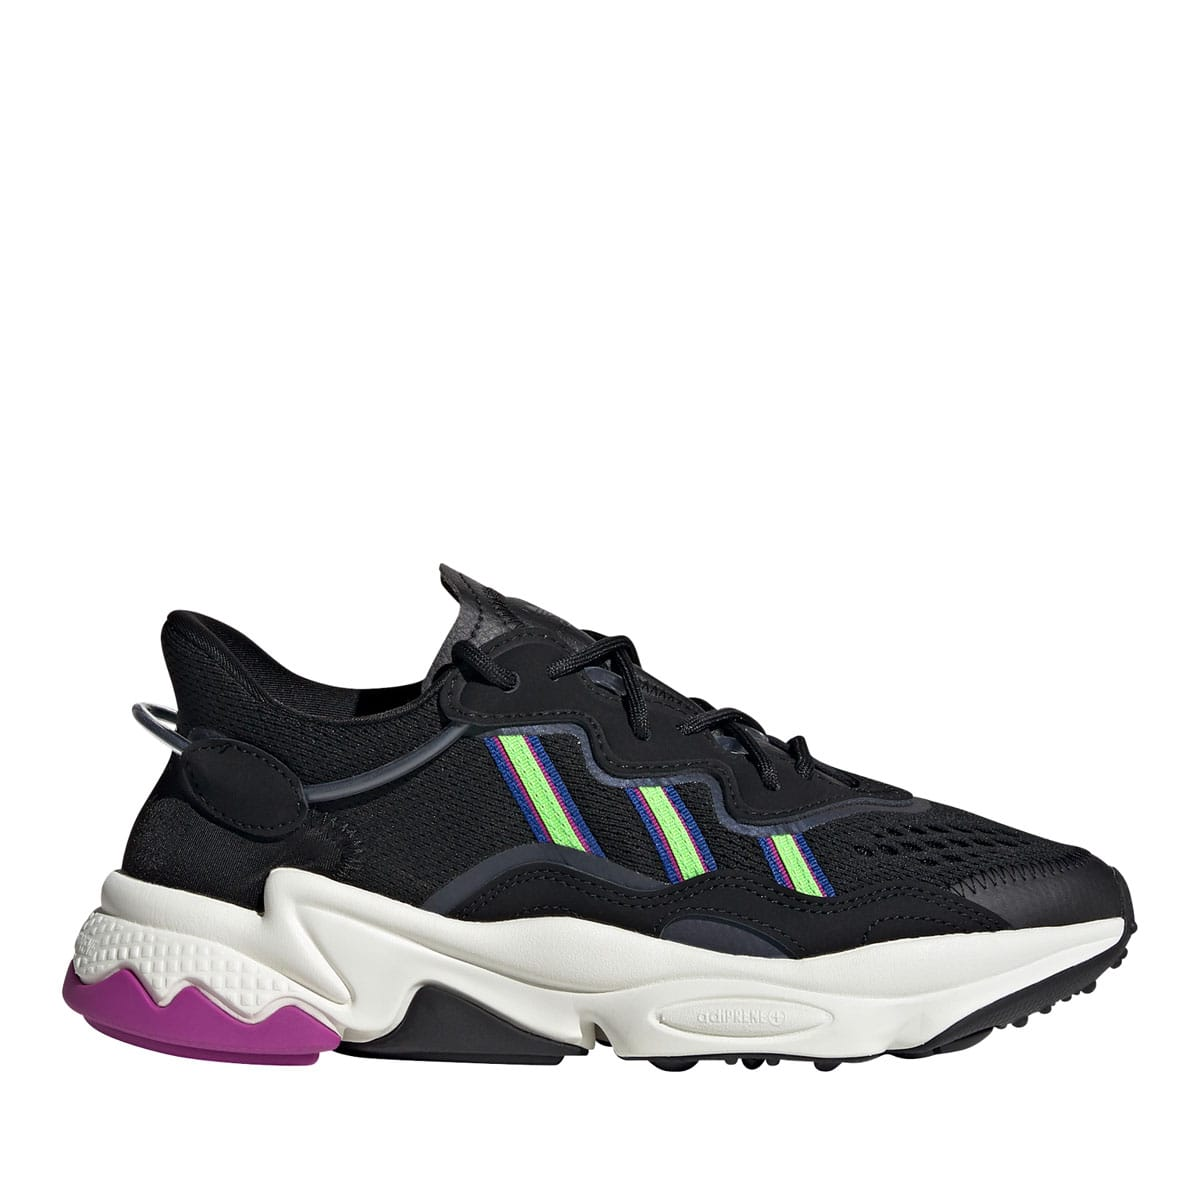 adidas OZWEEGO W CORE BLACK/SOLAR GREEN/VIVID PINK 20SS-I_photo_large